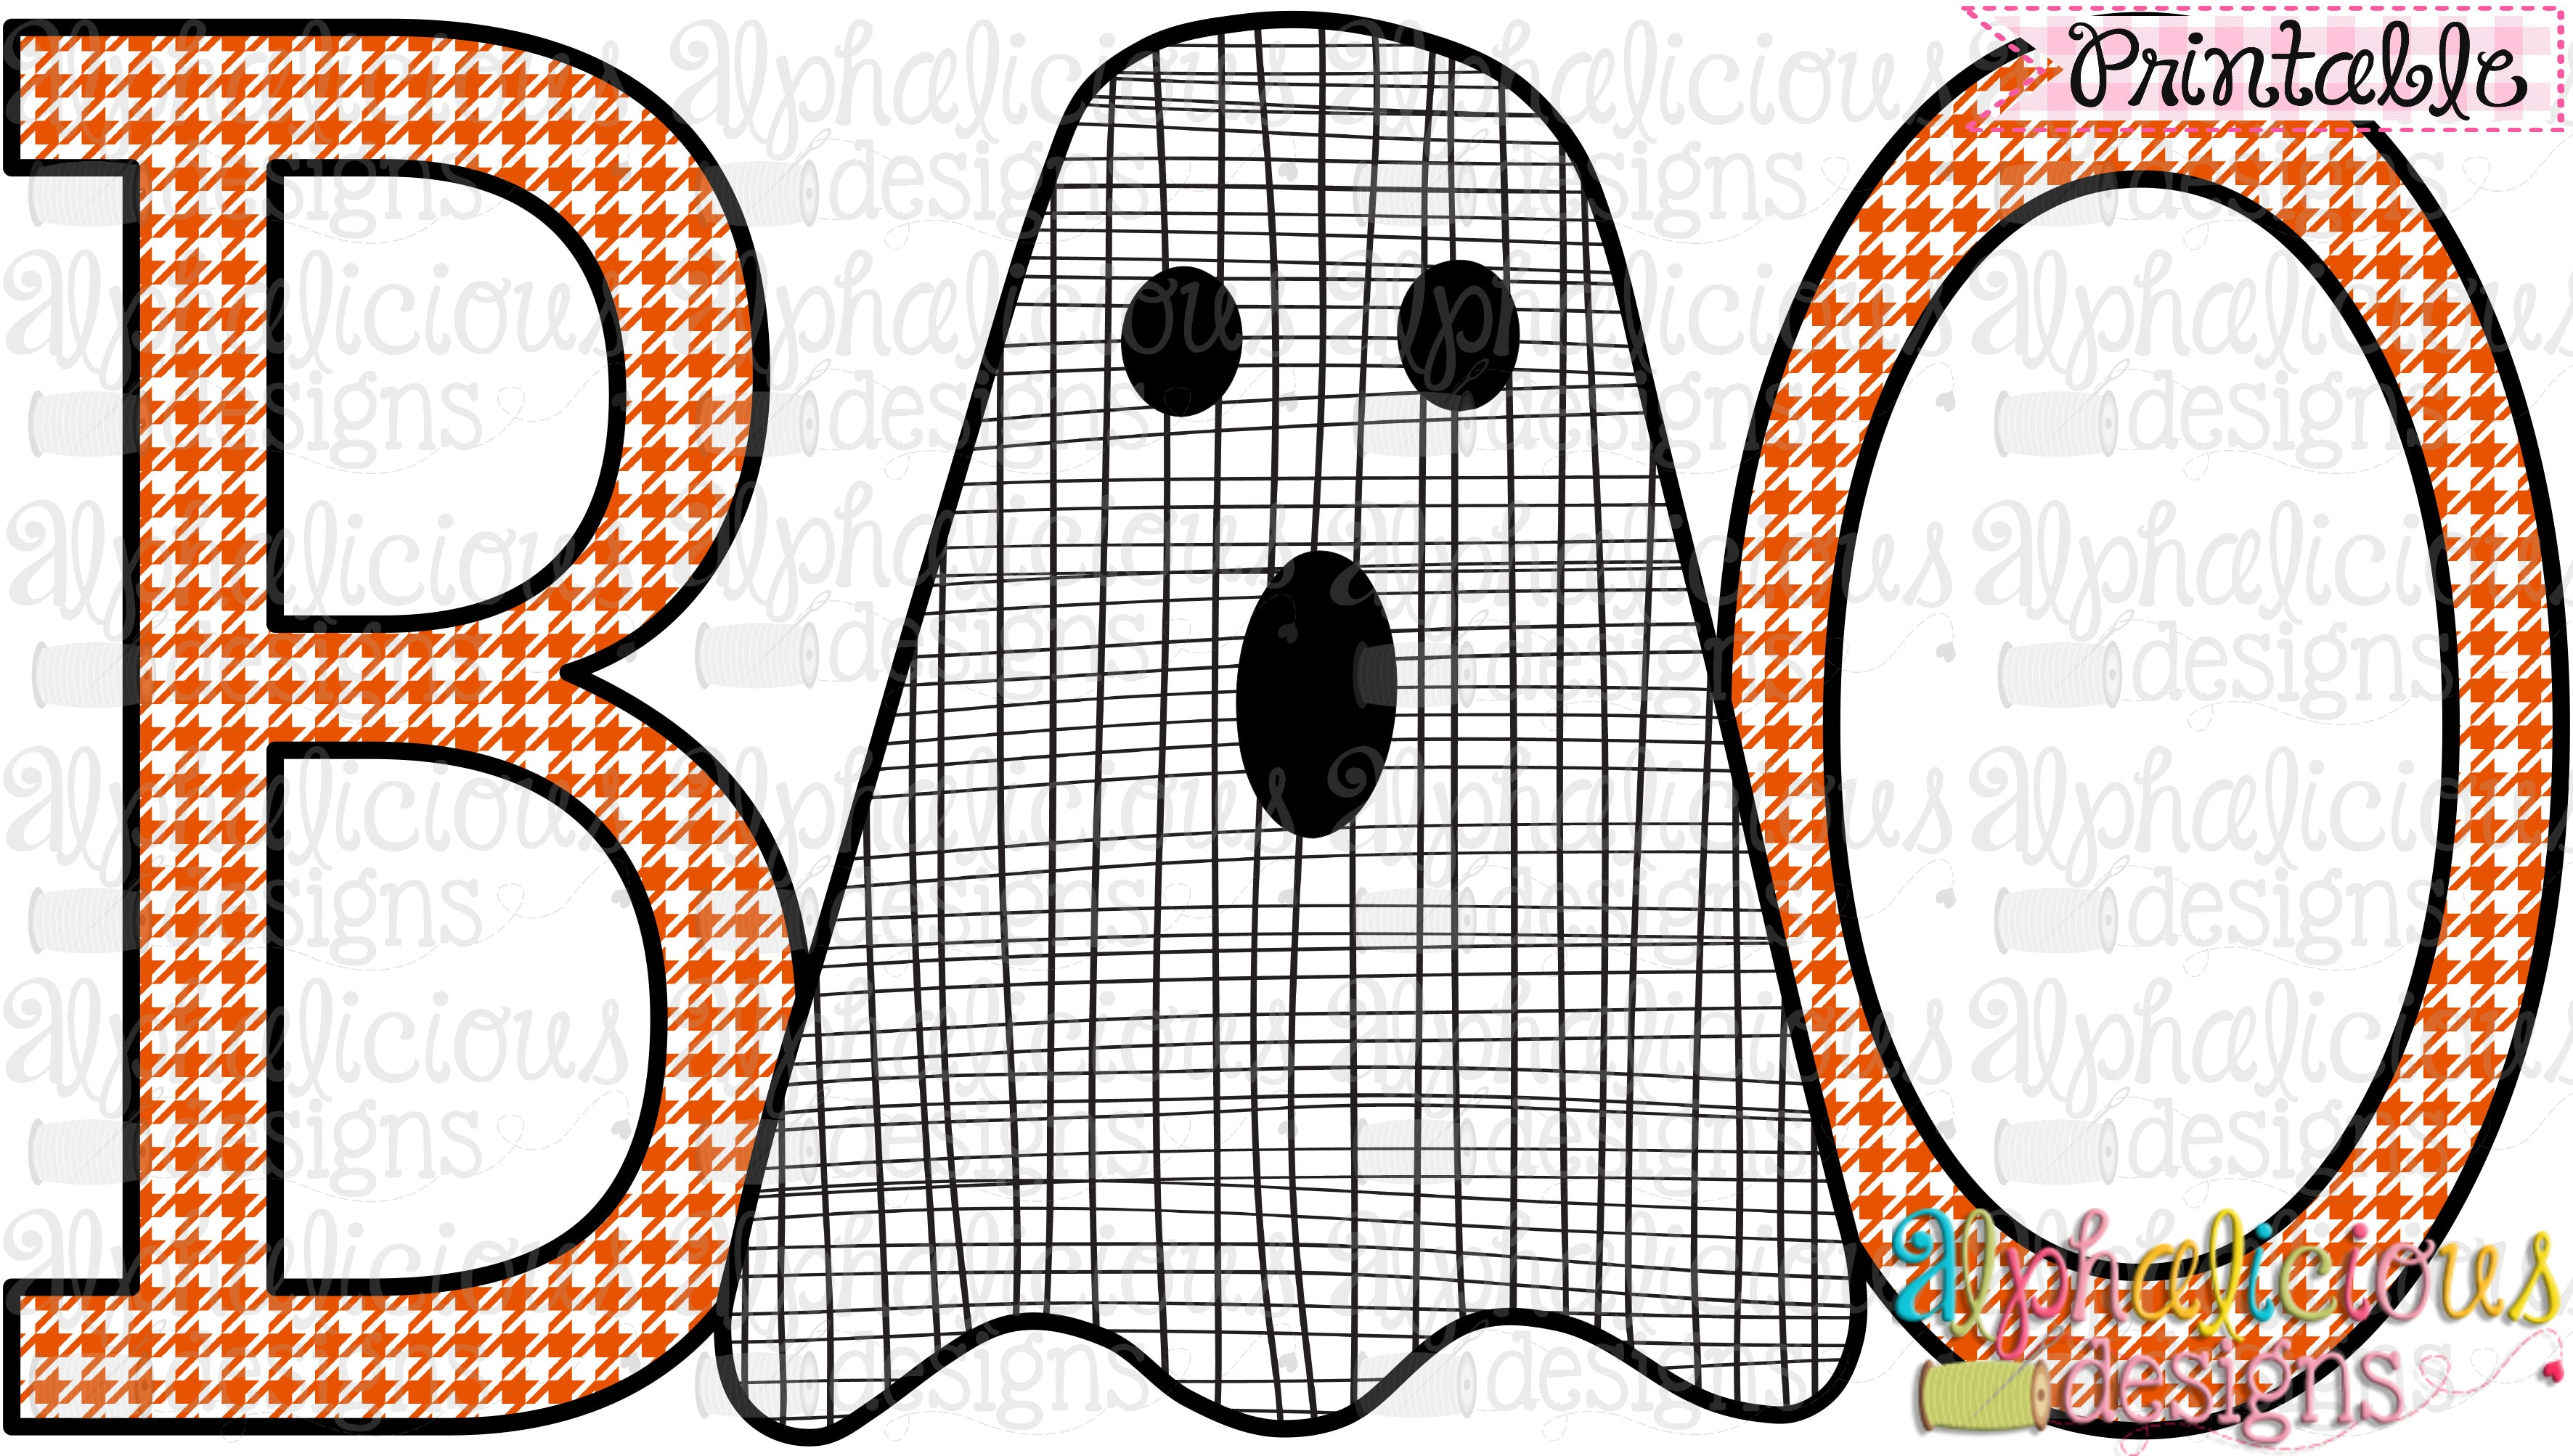 graphic about Boo Printable titled Boo-Printable